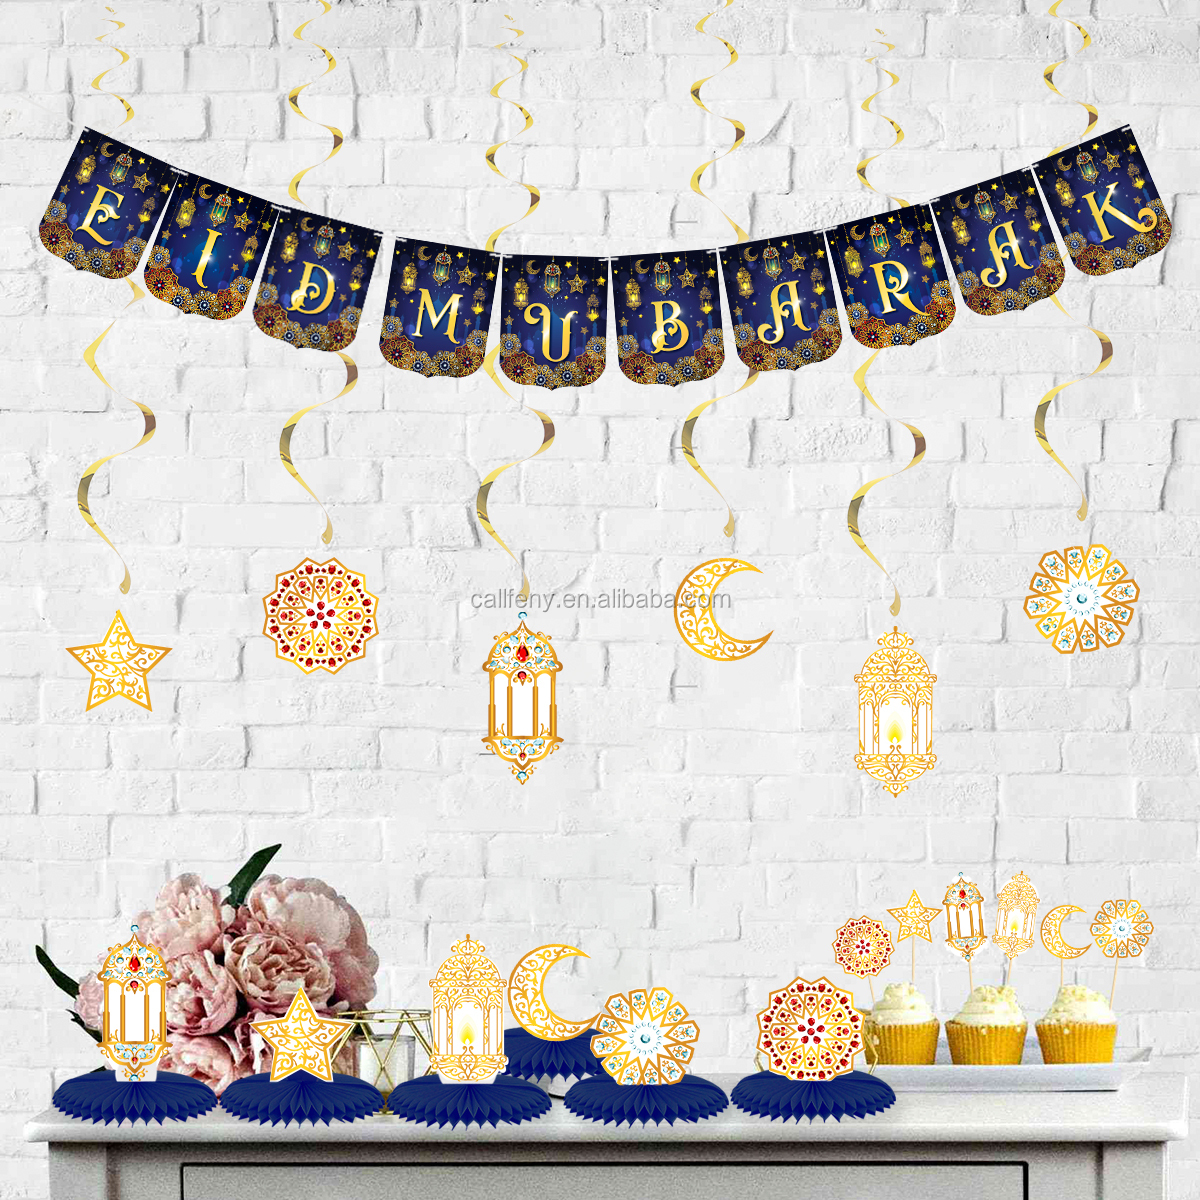 new products 2020 blue eid mubarak banners and paper fans